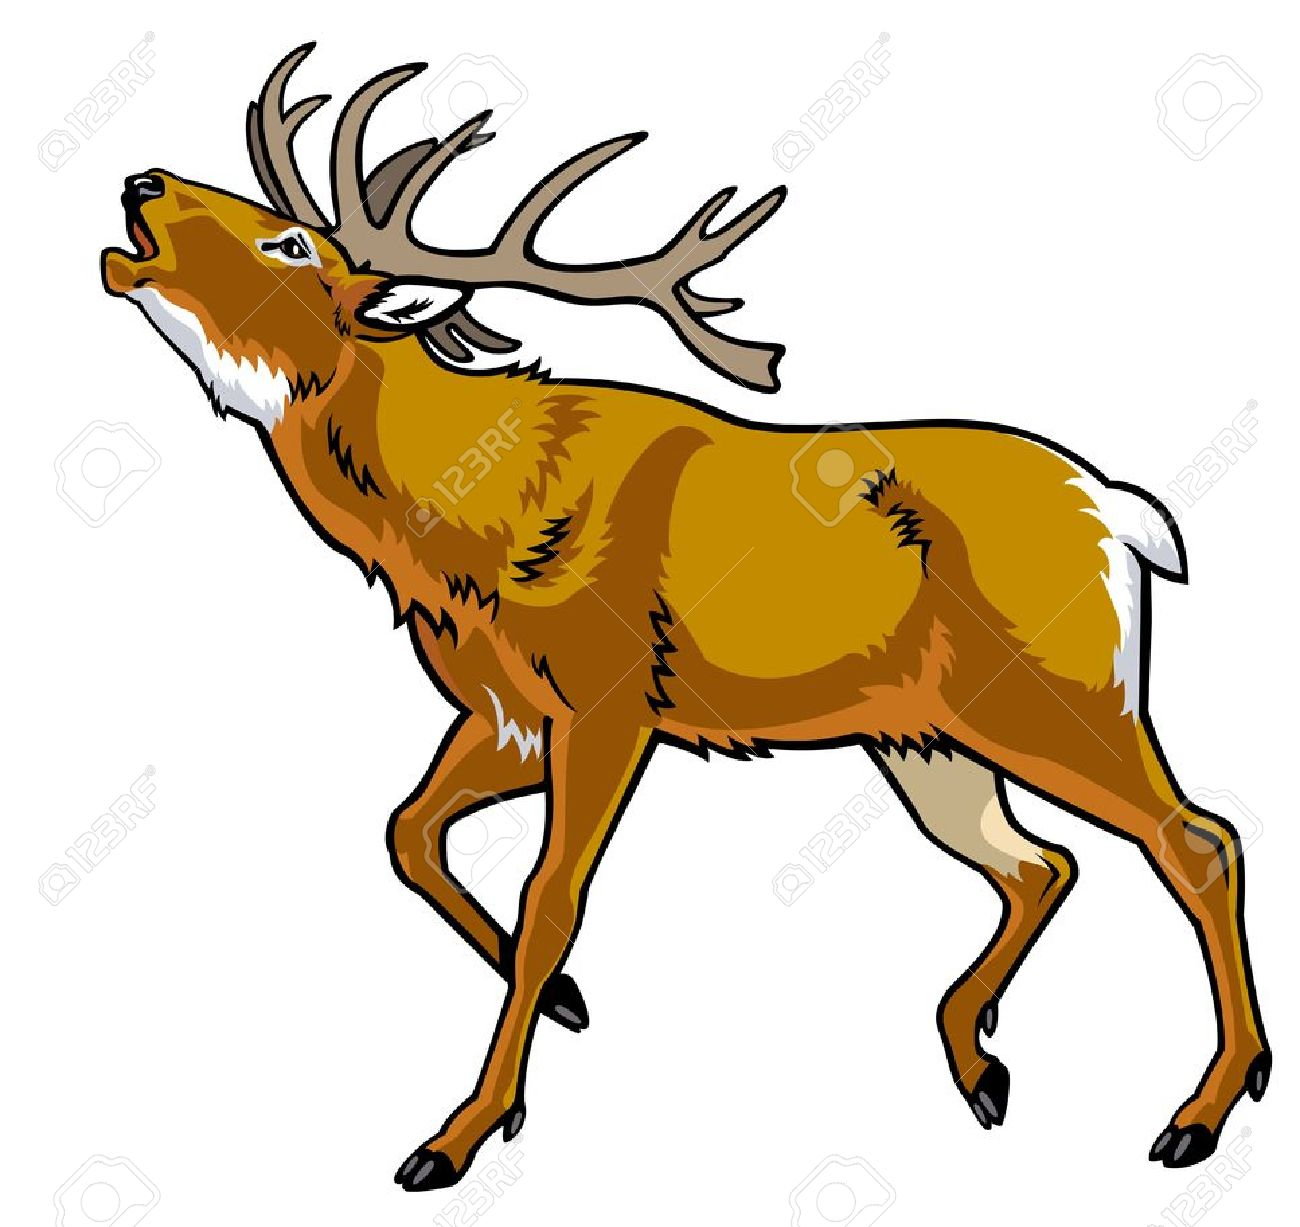 51 Cervus Elaphus Stock Illustrations, Cliparts And Royalty Free.